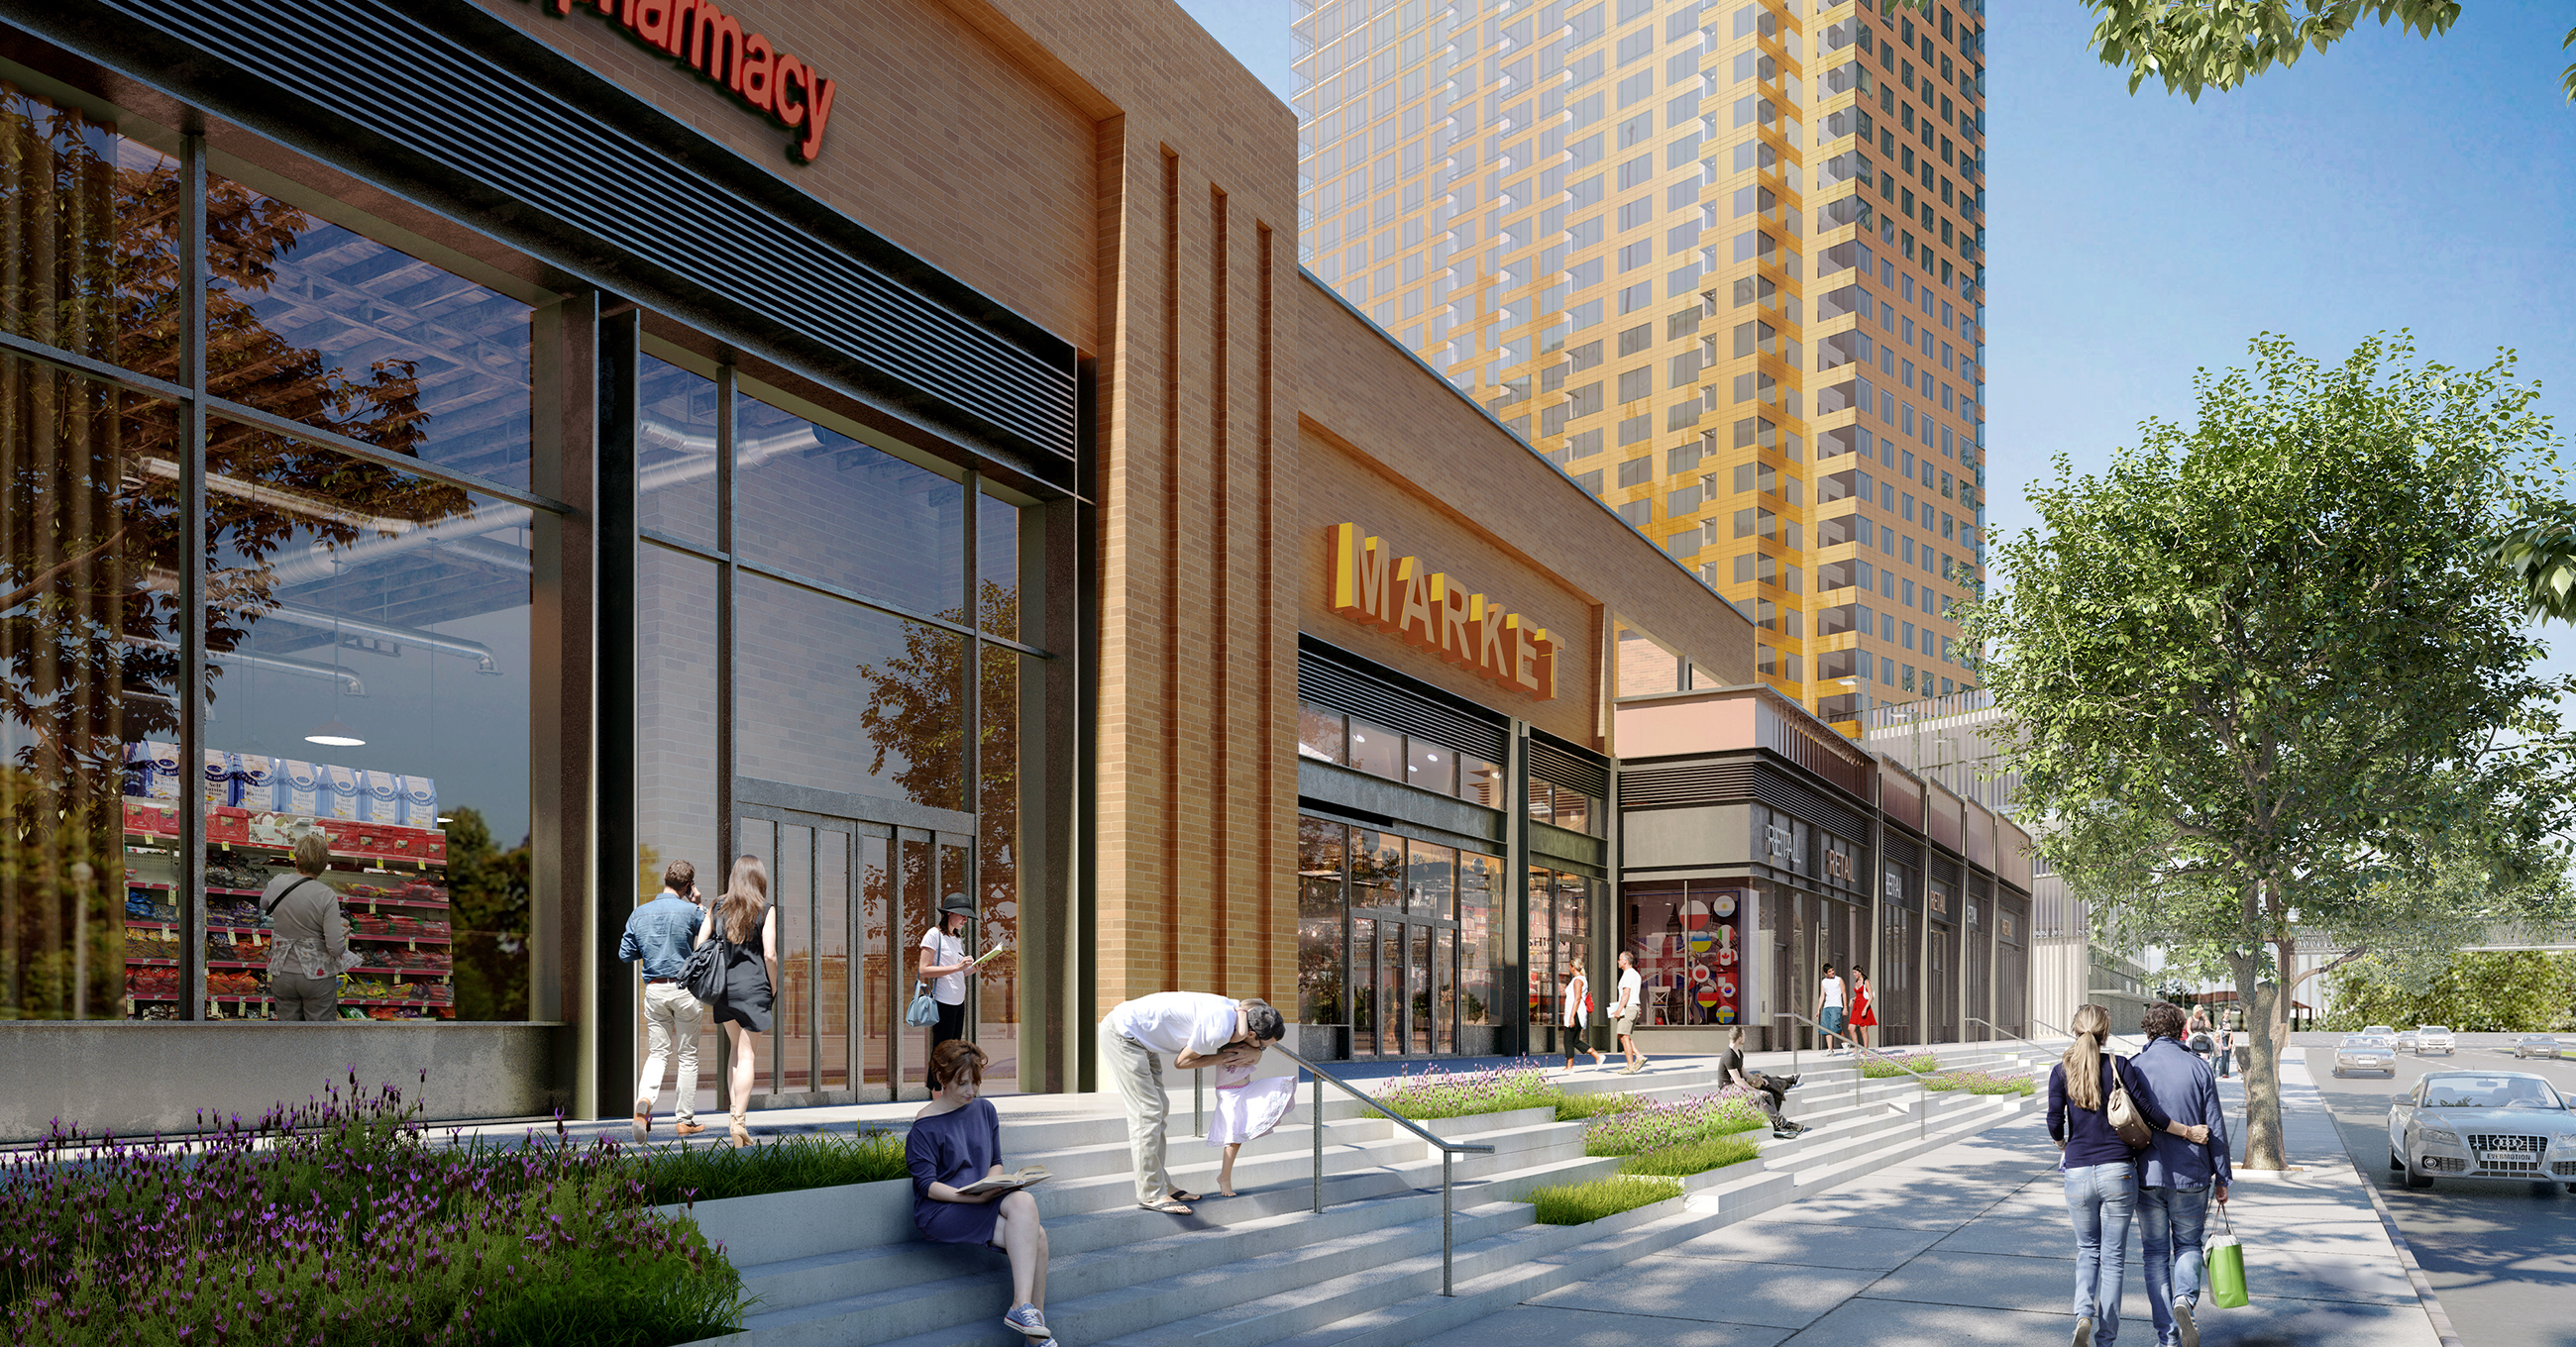 Retail for 532 Neptune Avenue. rendering by S9 Architecture